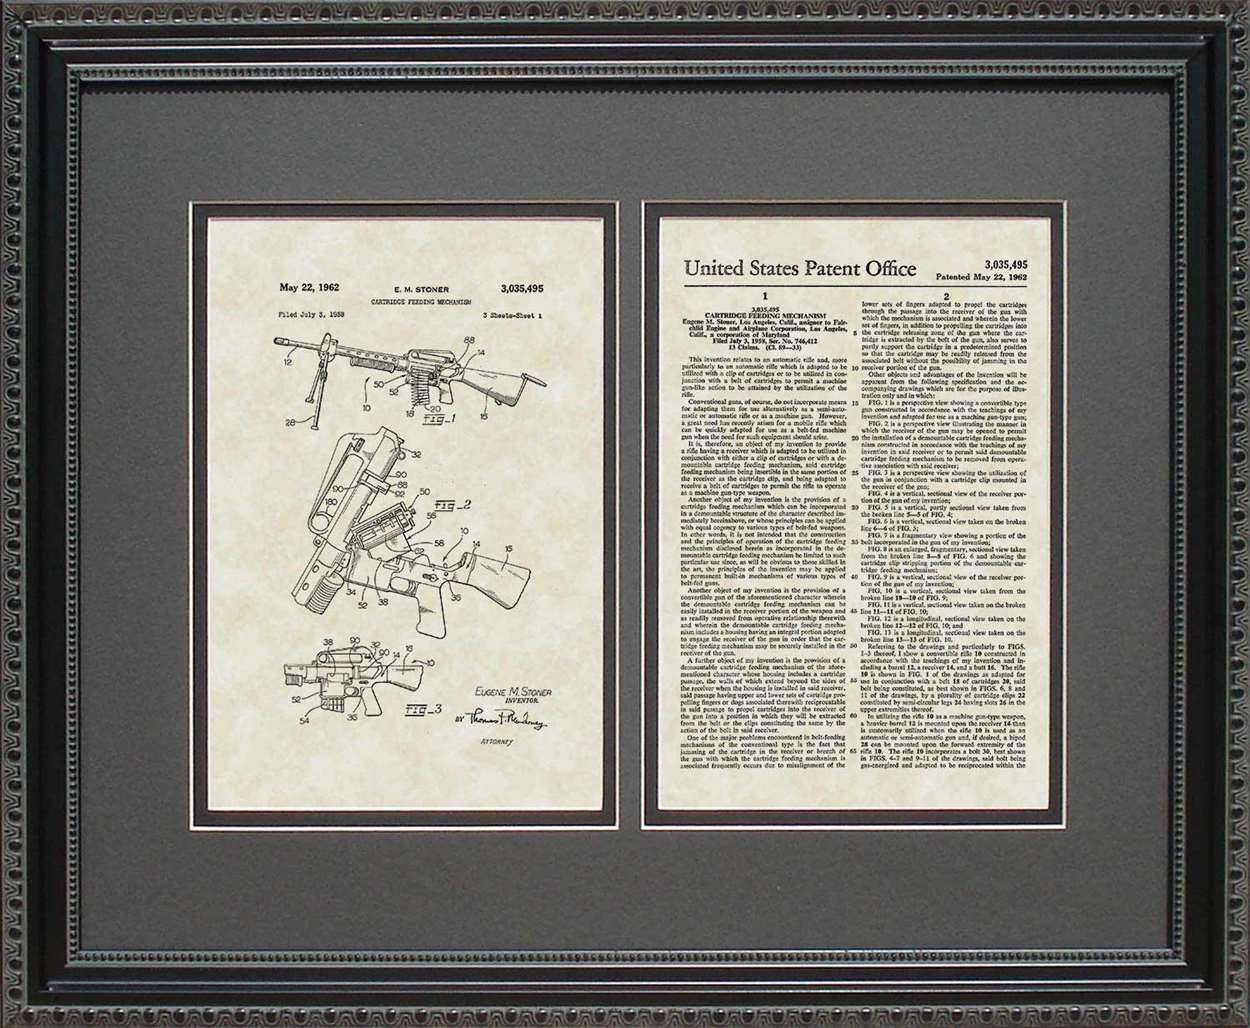 AR15 Rifle Patent, Art & Copy, Stoner, 1962, 16x20